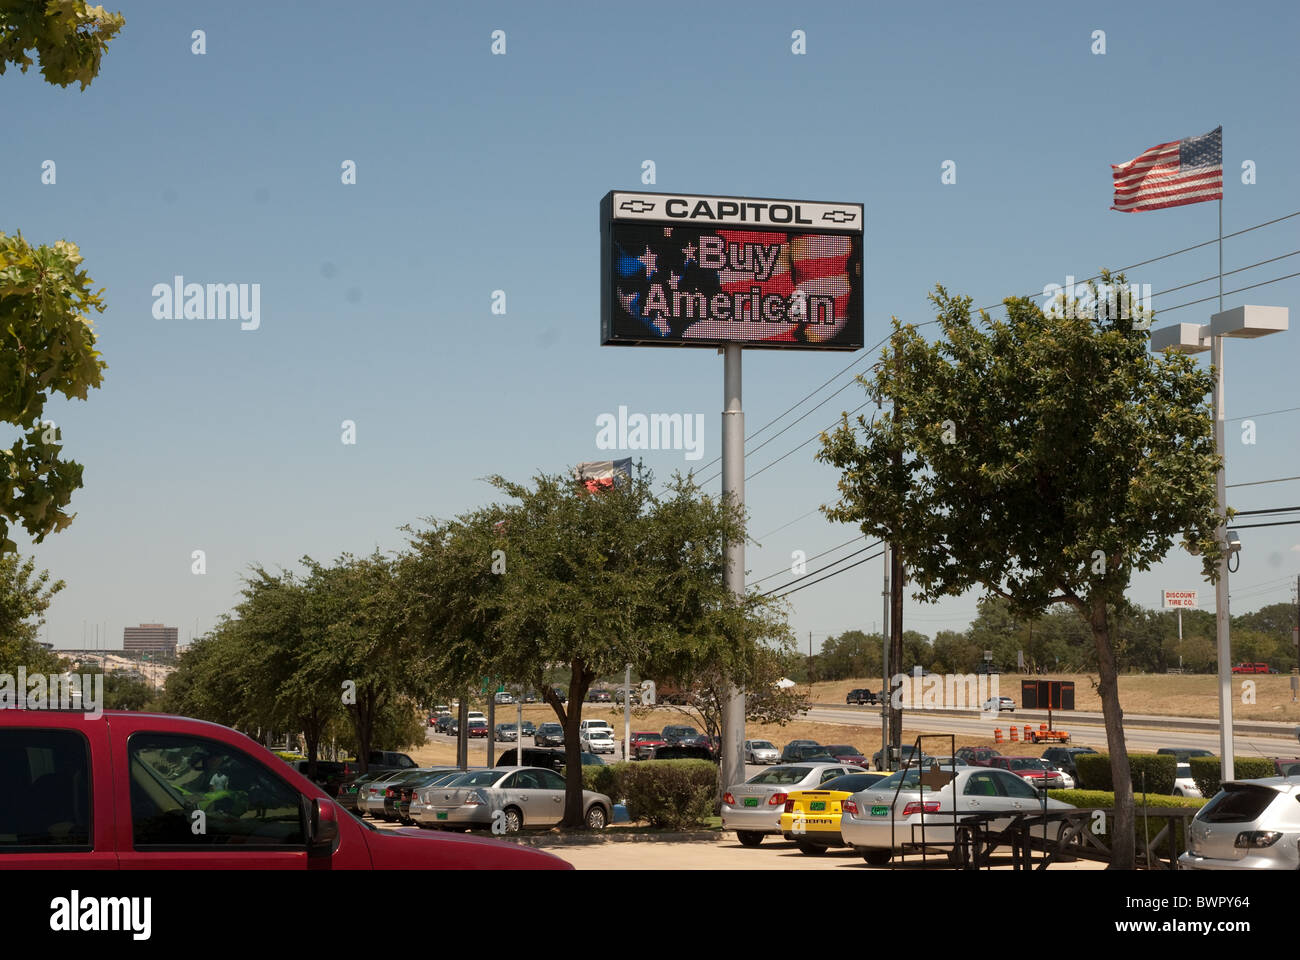 Buy American Electronic Sign In Chevrolet Dealership Car Lot